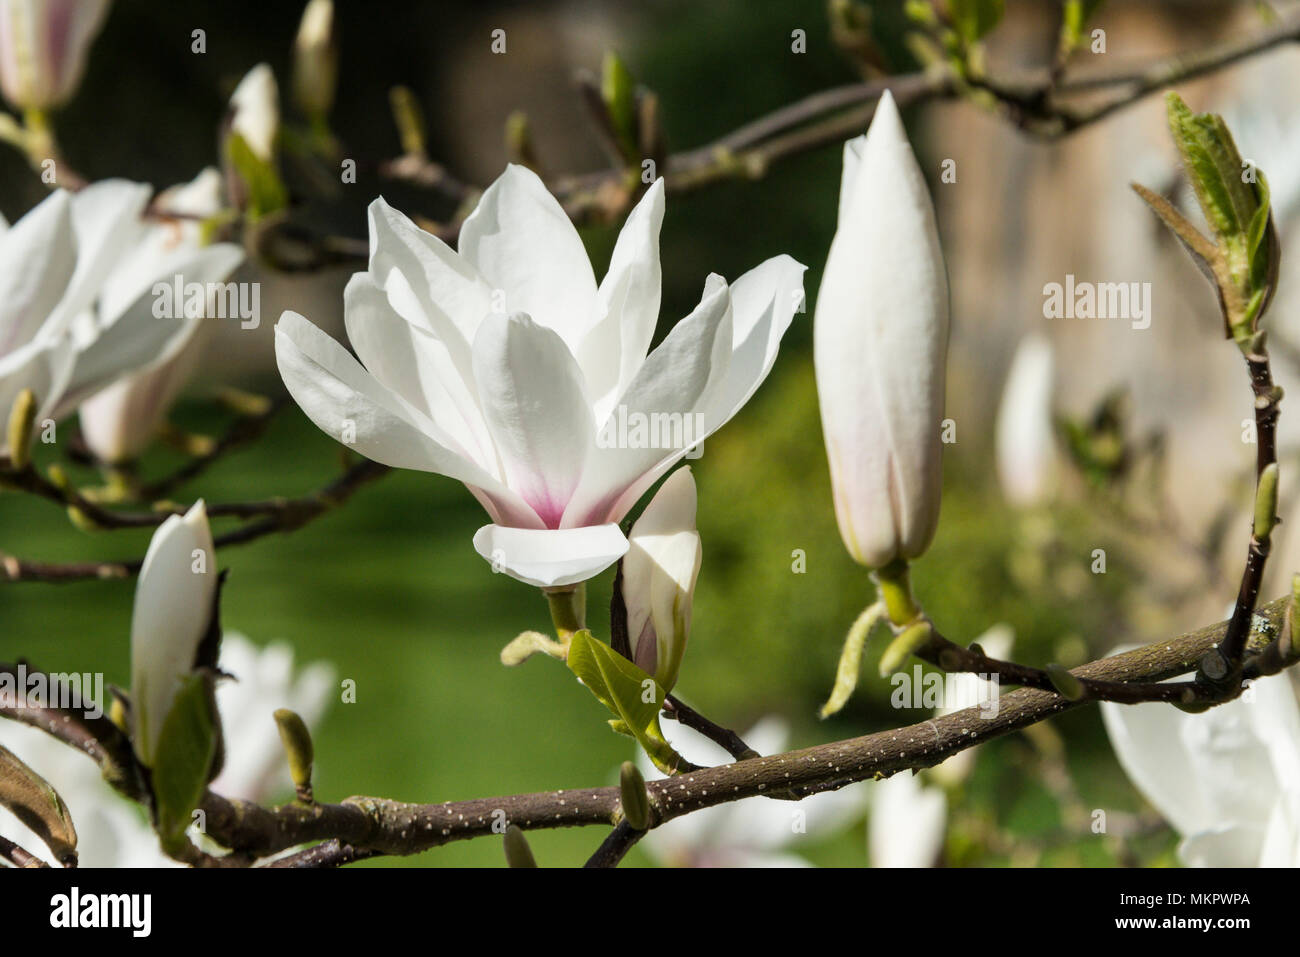 A White Flower And A Flower In Bud Of A Saucer Magnolia Tree Magnolia Soulangeana Stock Photo Alamy